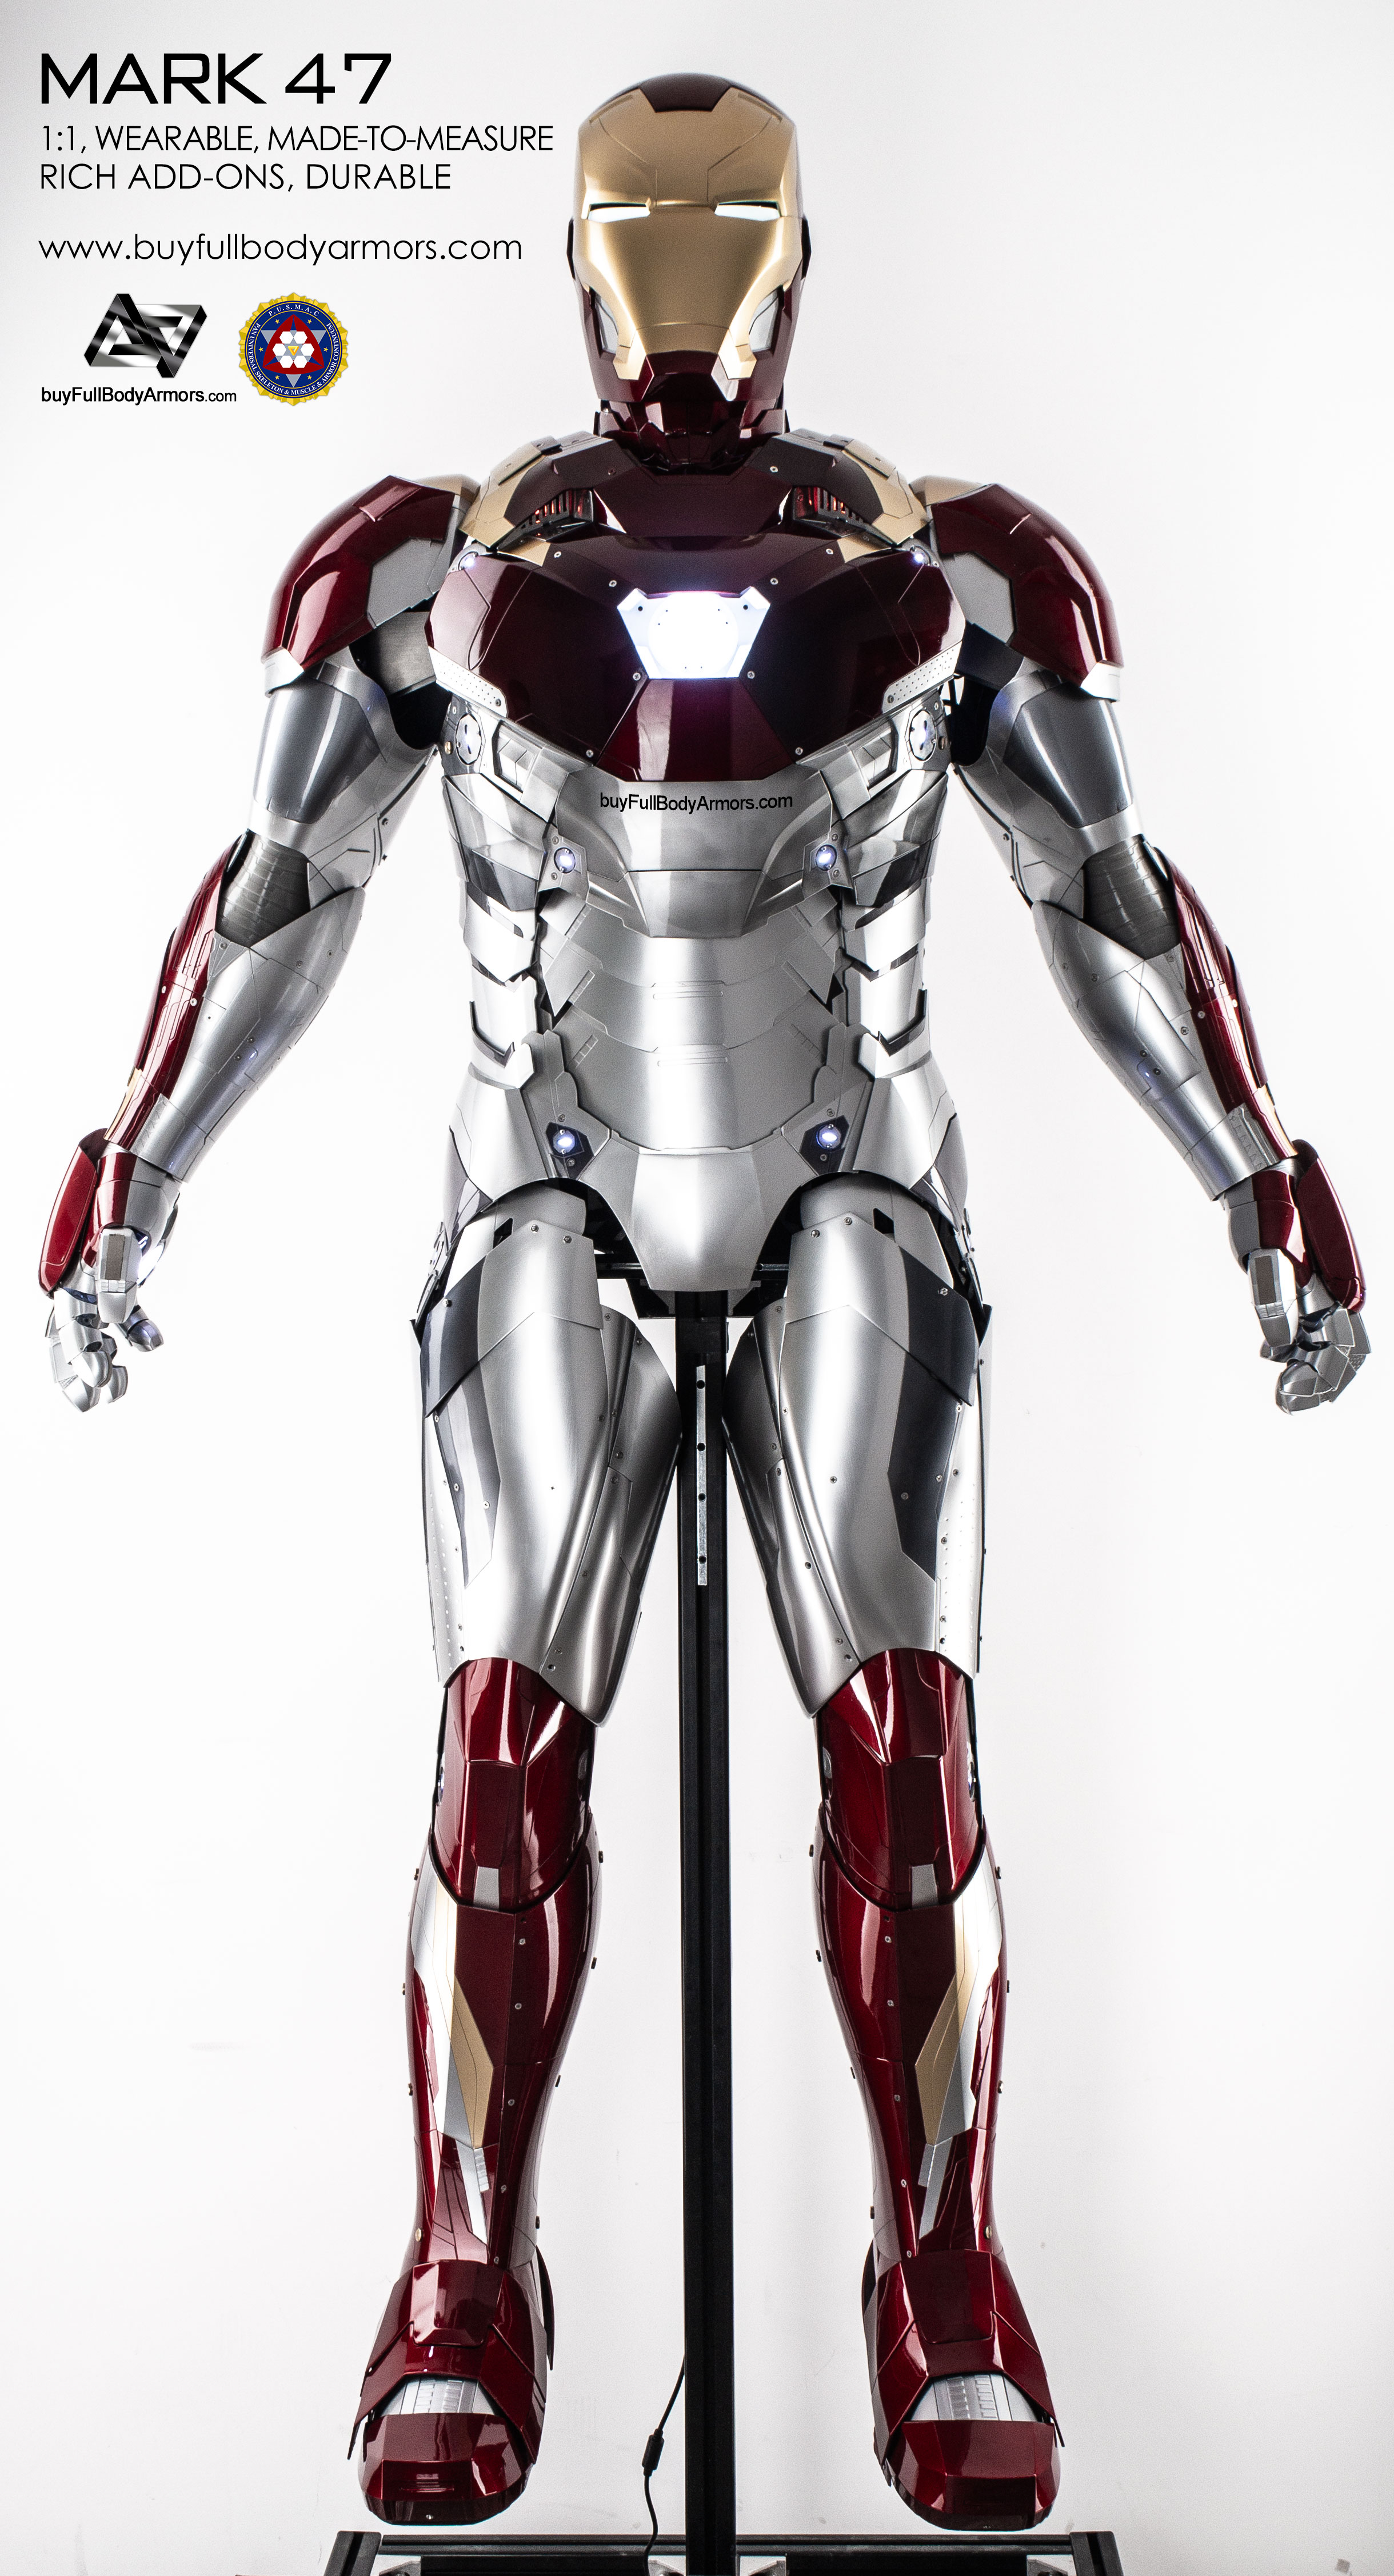 wearable iron man mark 47 armor costume full body painted front view